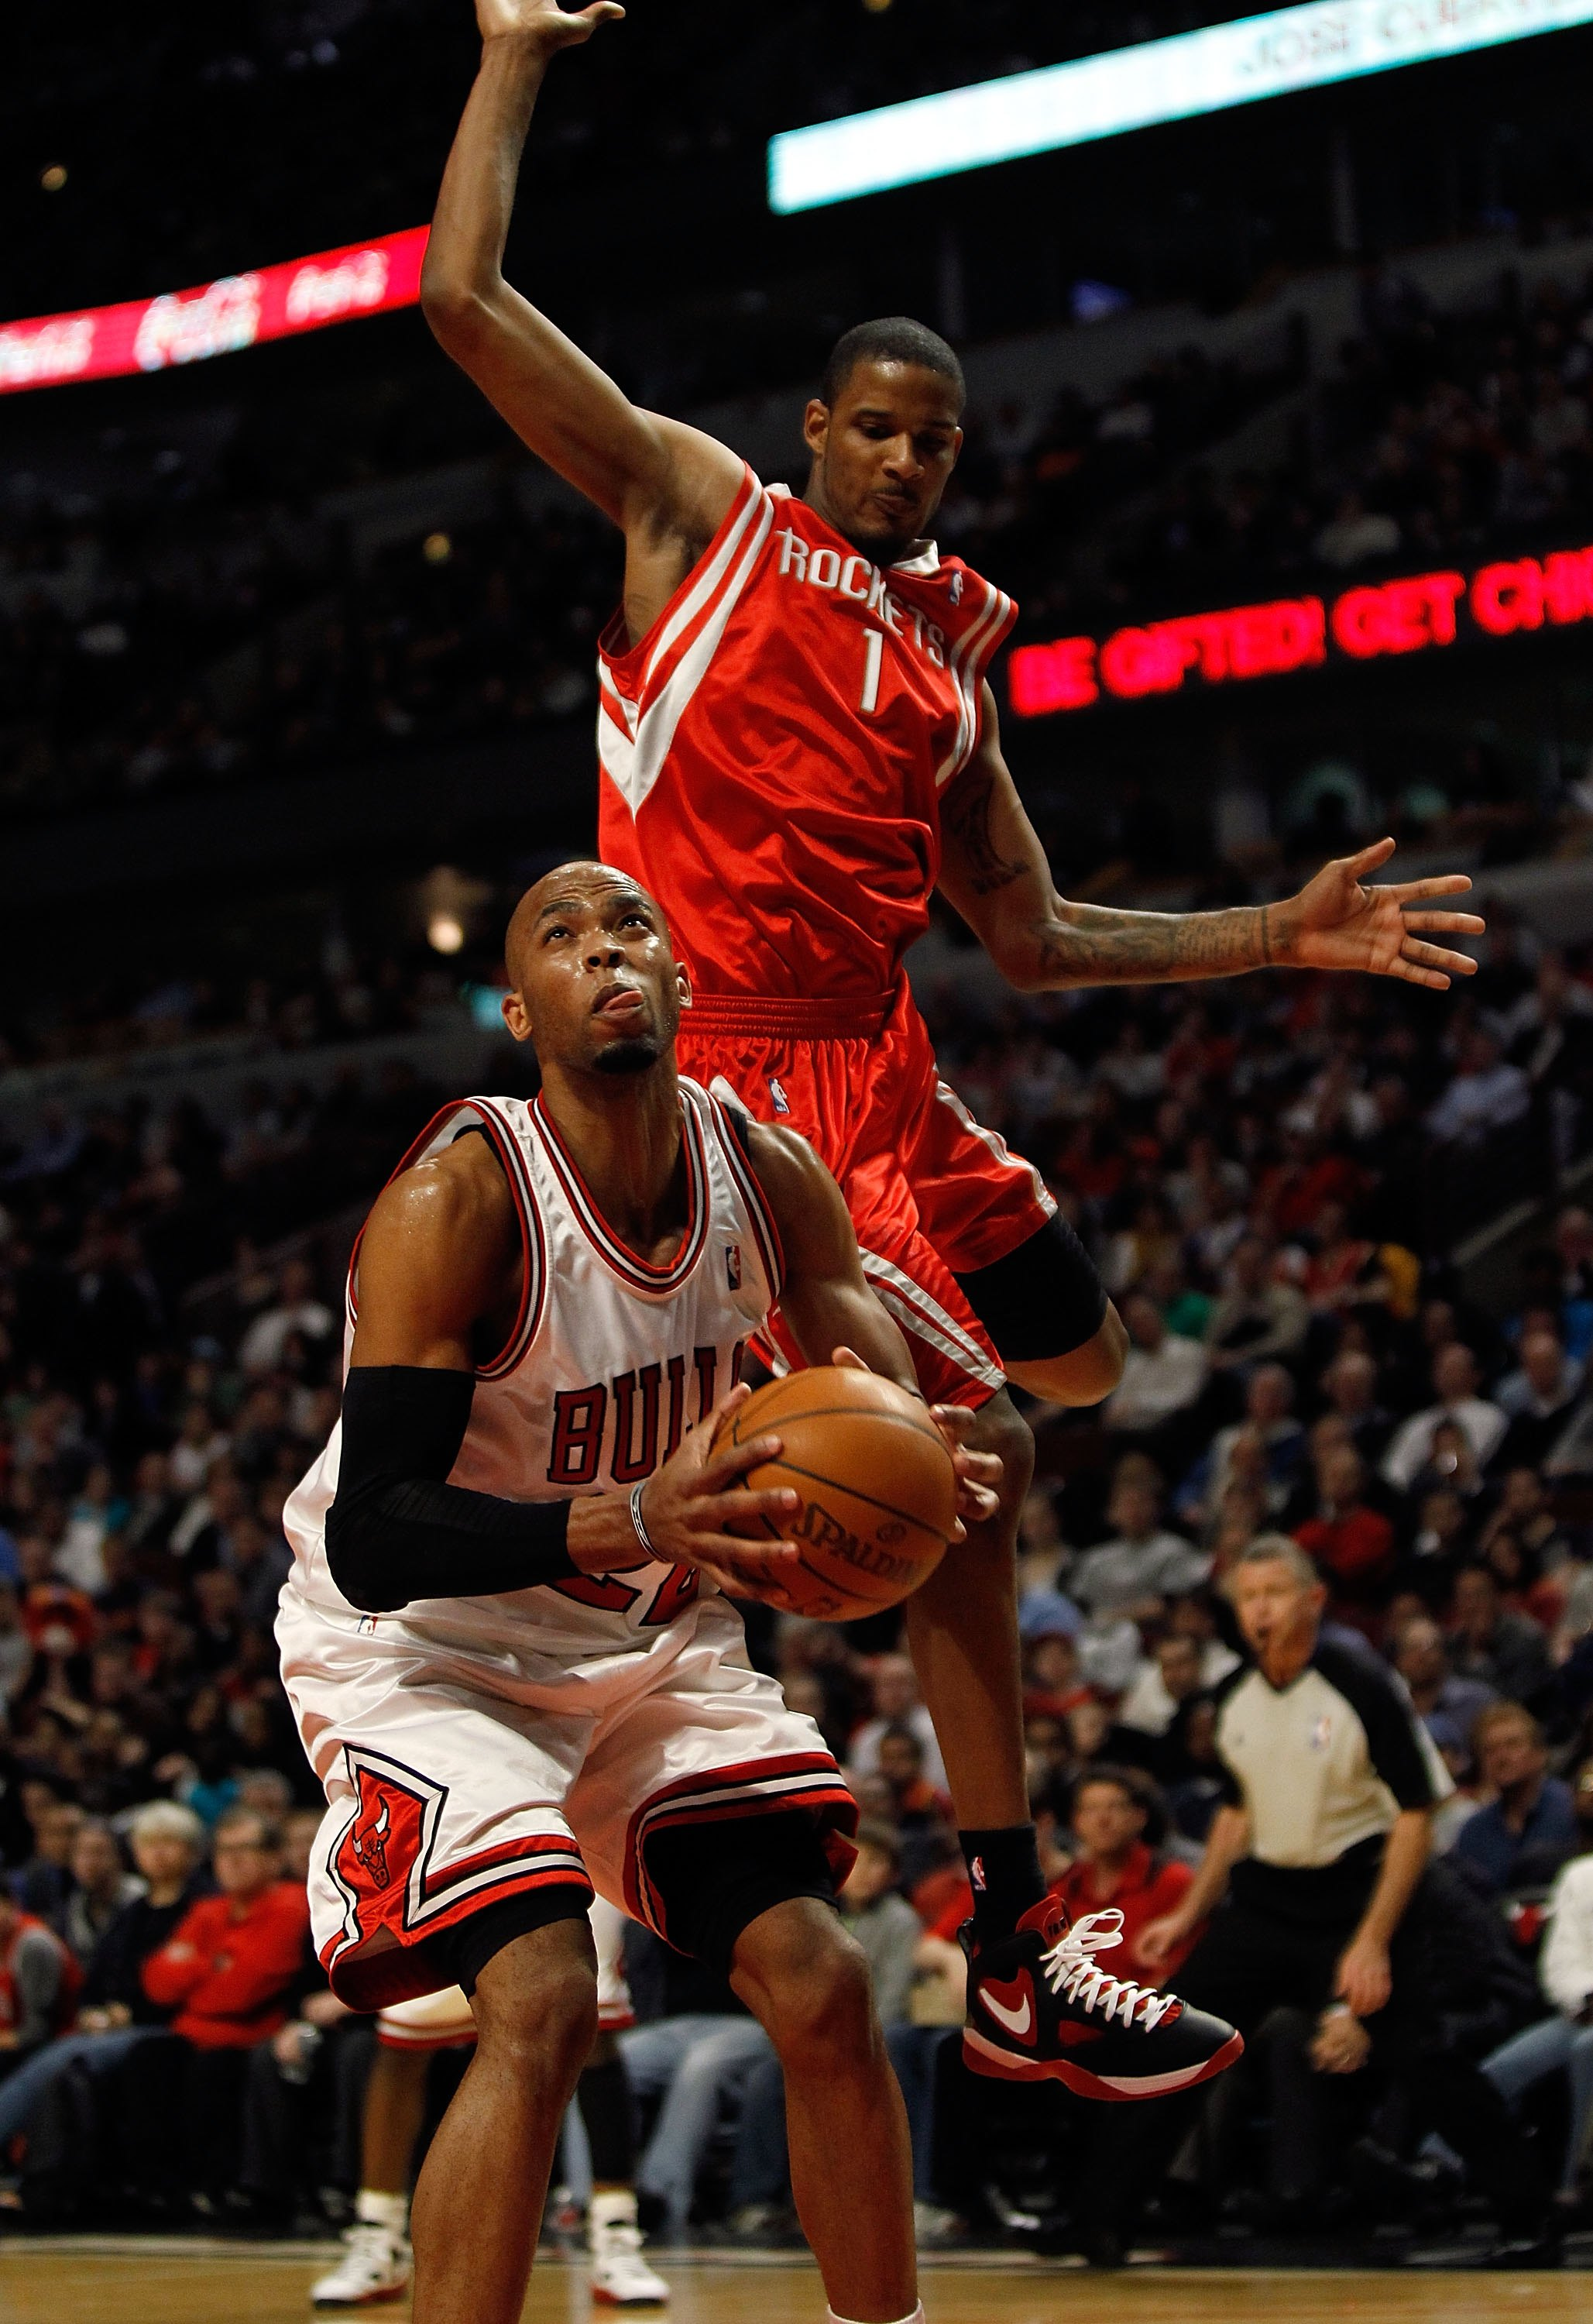 CHICAGO - MARCH 22: Taj Gibson #22 of the Chicago Bulls tries to shoot as Trevor Ariza #1 of the Houston Rockets leaps behind him at the United Center on March 22, 2010 in Chicago, Illinois. The Bulls defeated the Rockets 98-88. NOTE TO USER: User express